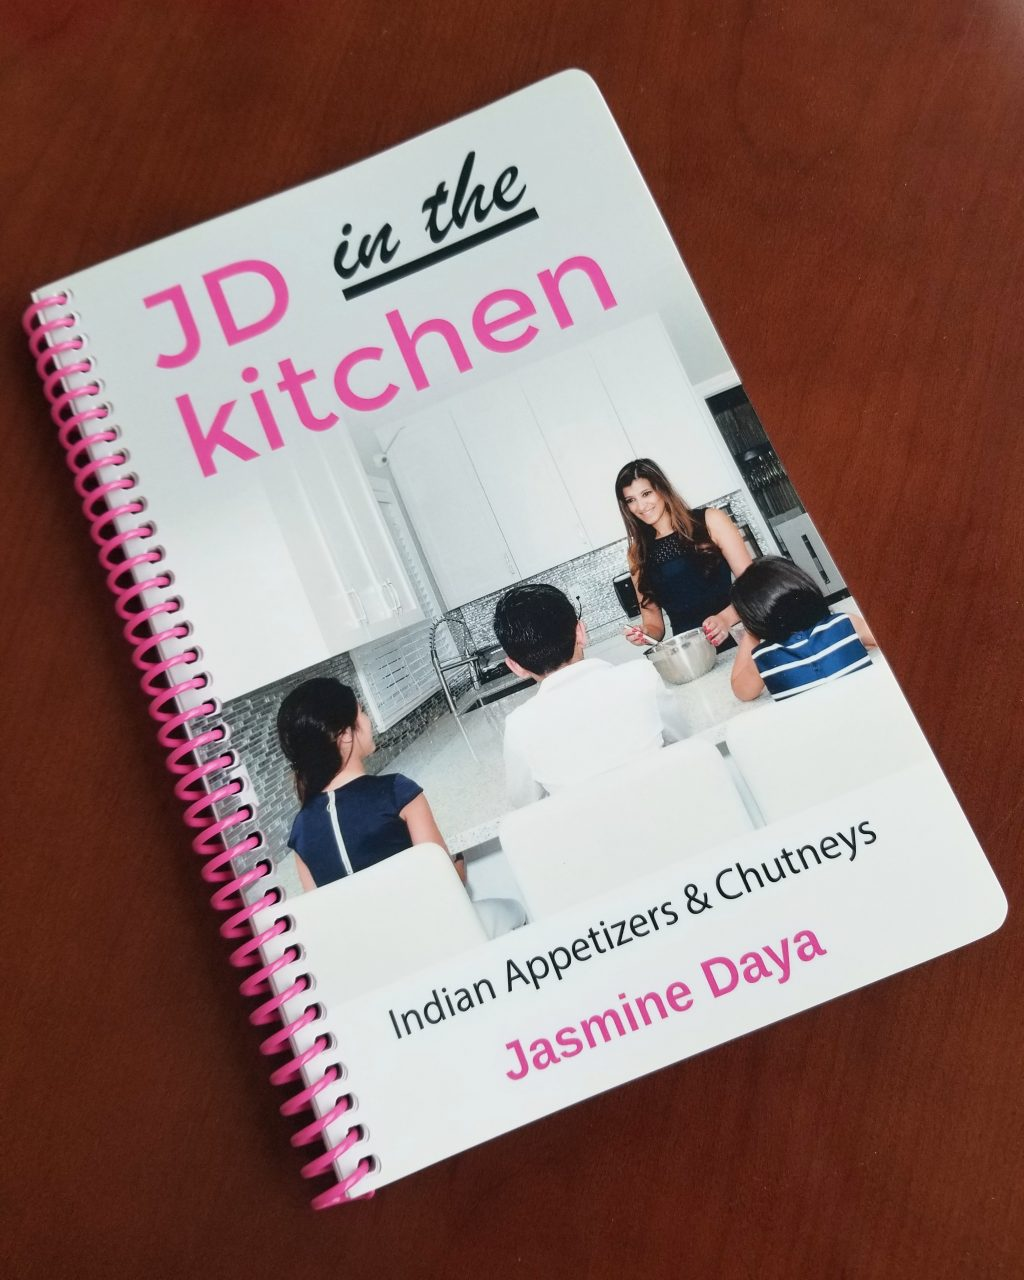 Best Kitchen Design Books Urban Asian Jasmine Daya S Book Jd In The Kitchen On Amazon Now